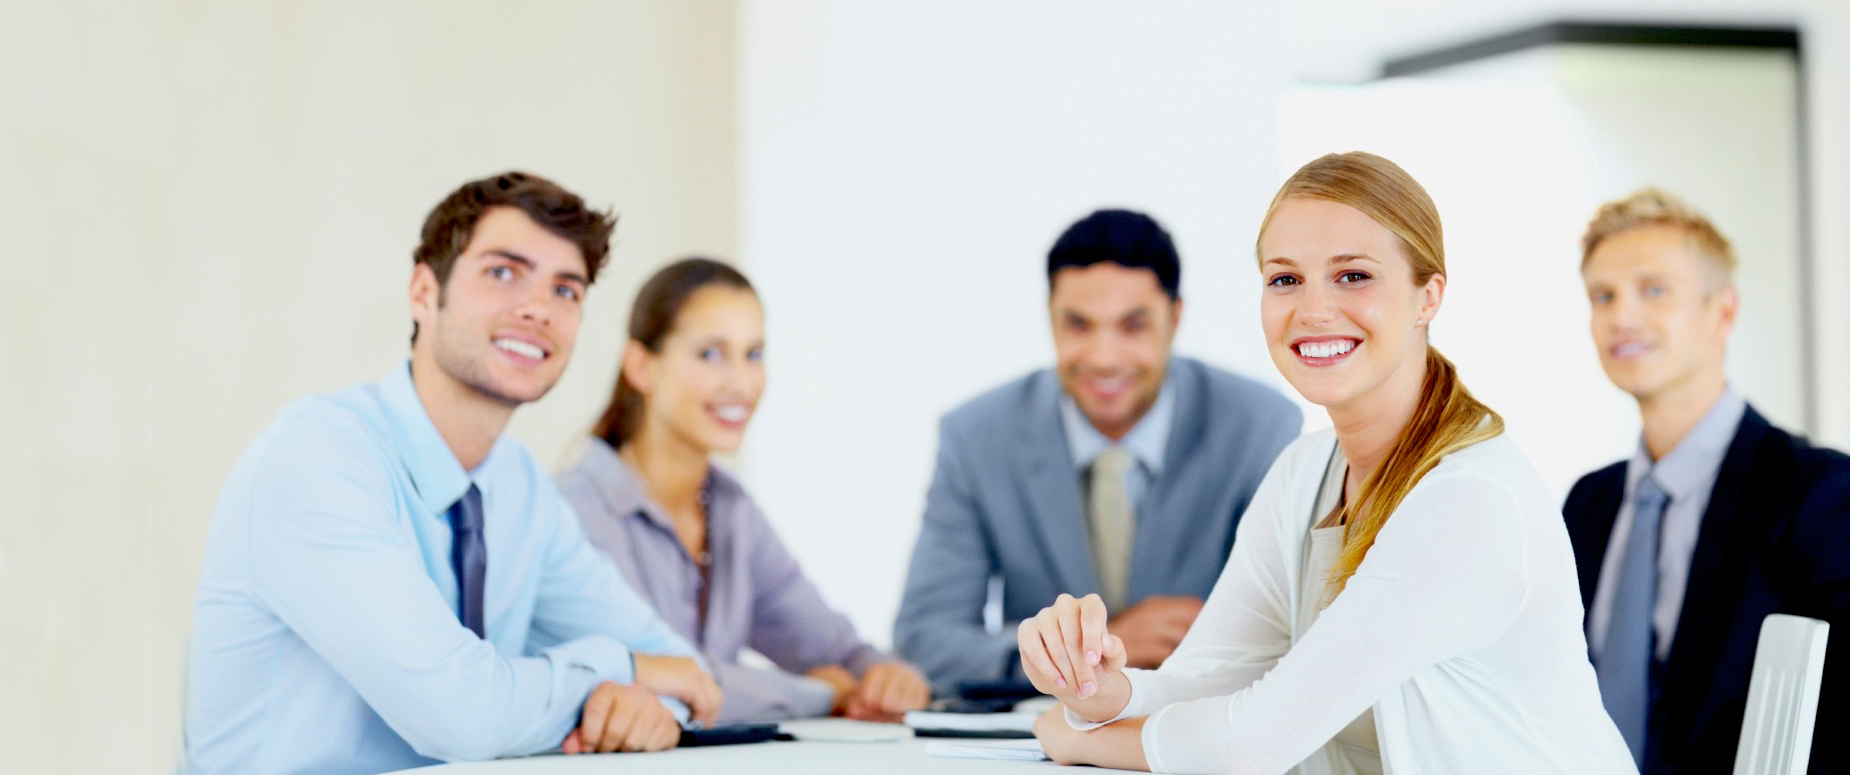 Online dating consultant jobs